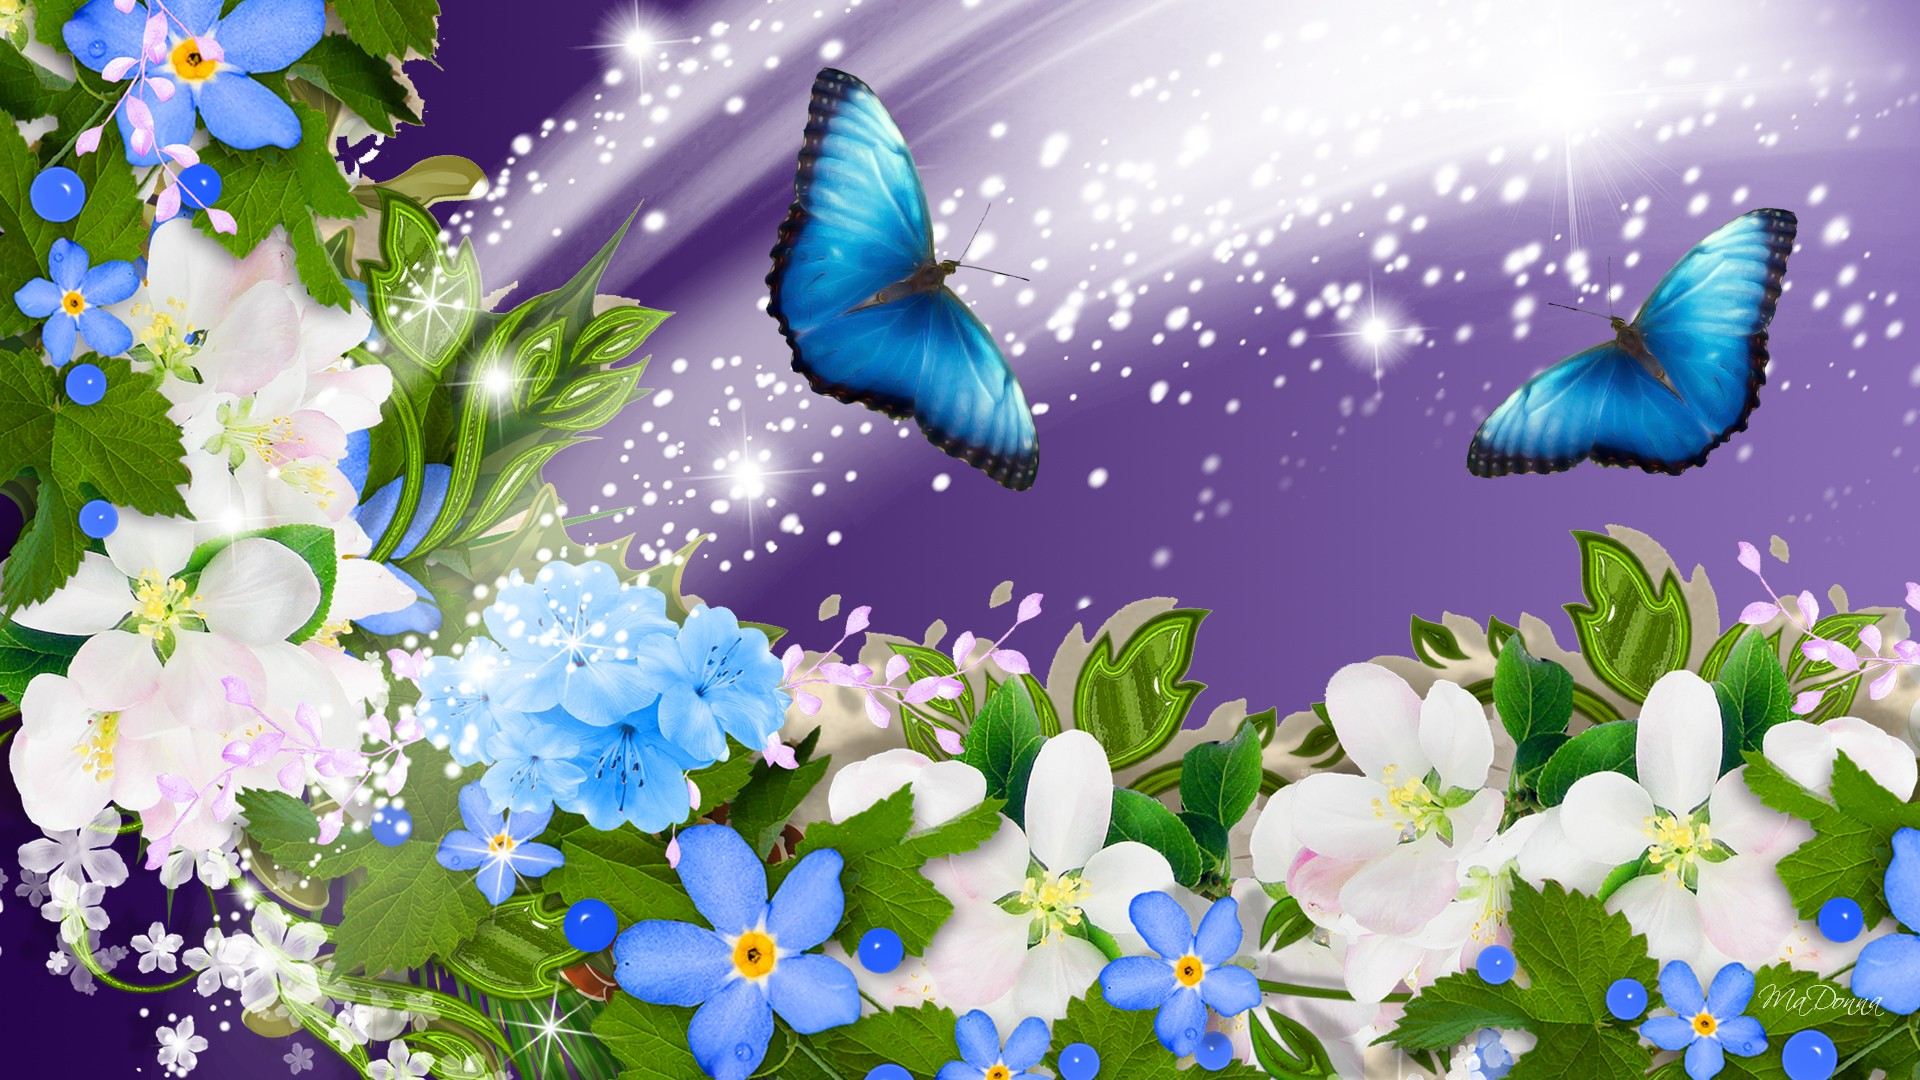 Flowers Wallpaper with Butterflies 1271.72 Kb